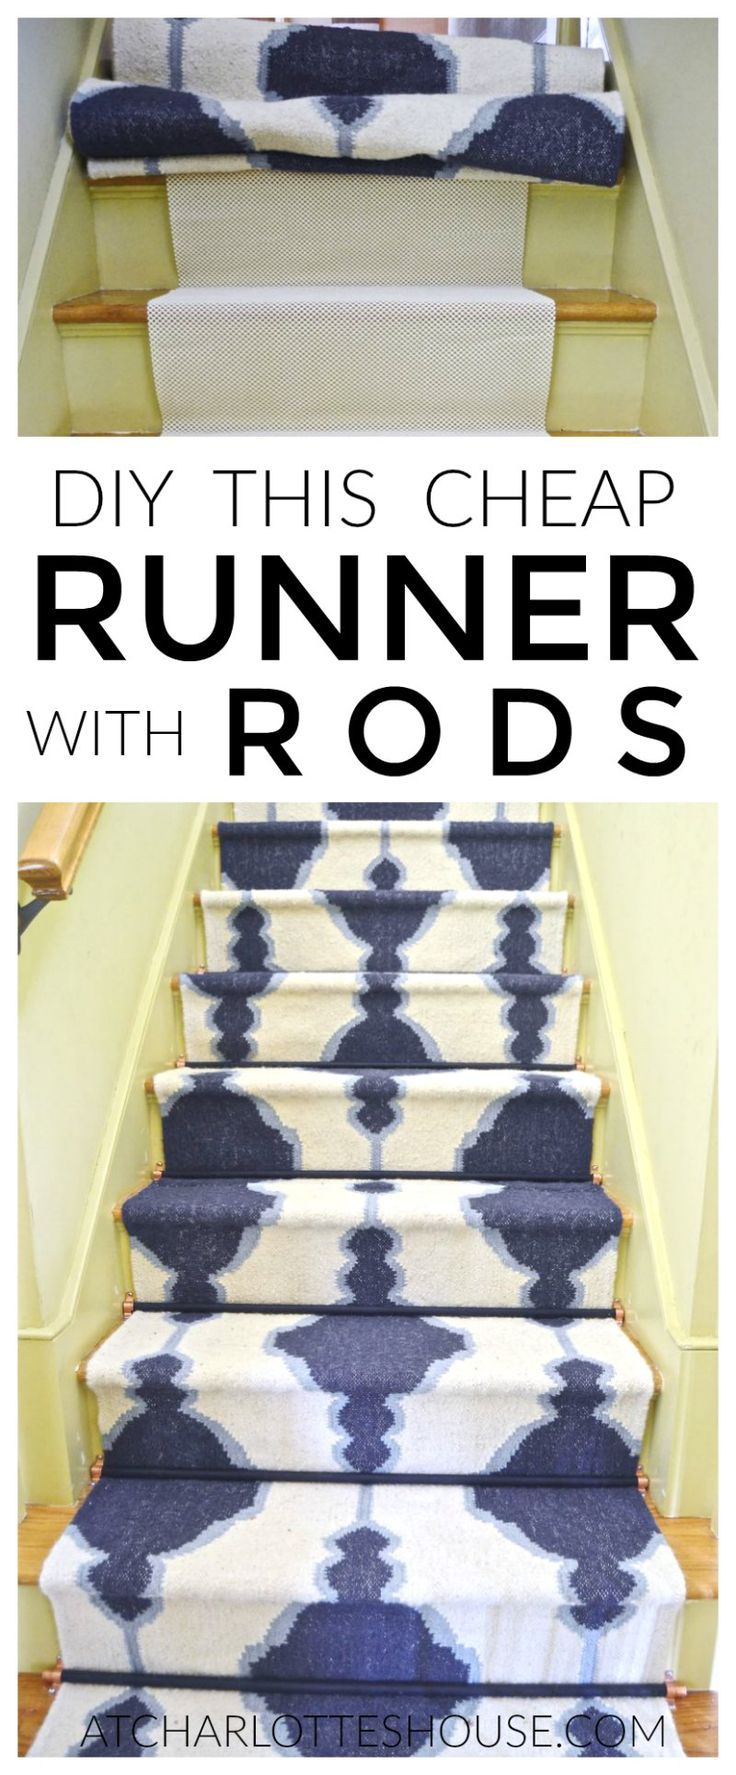 Super inexpensive and easy way to add a staircase runner WITH stair rods... under $20 if you can believe it!